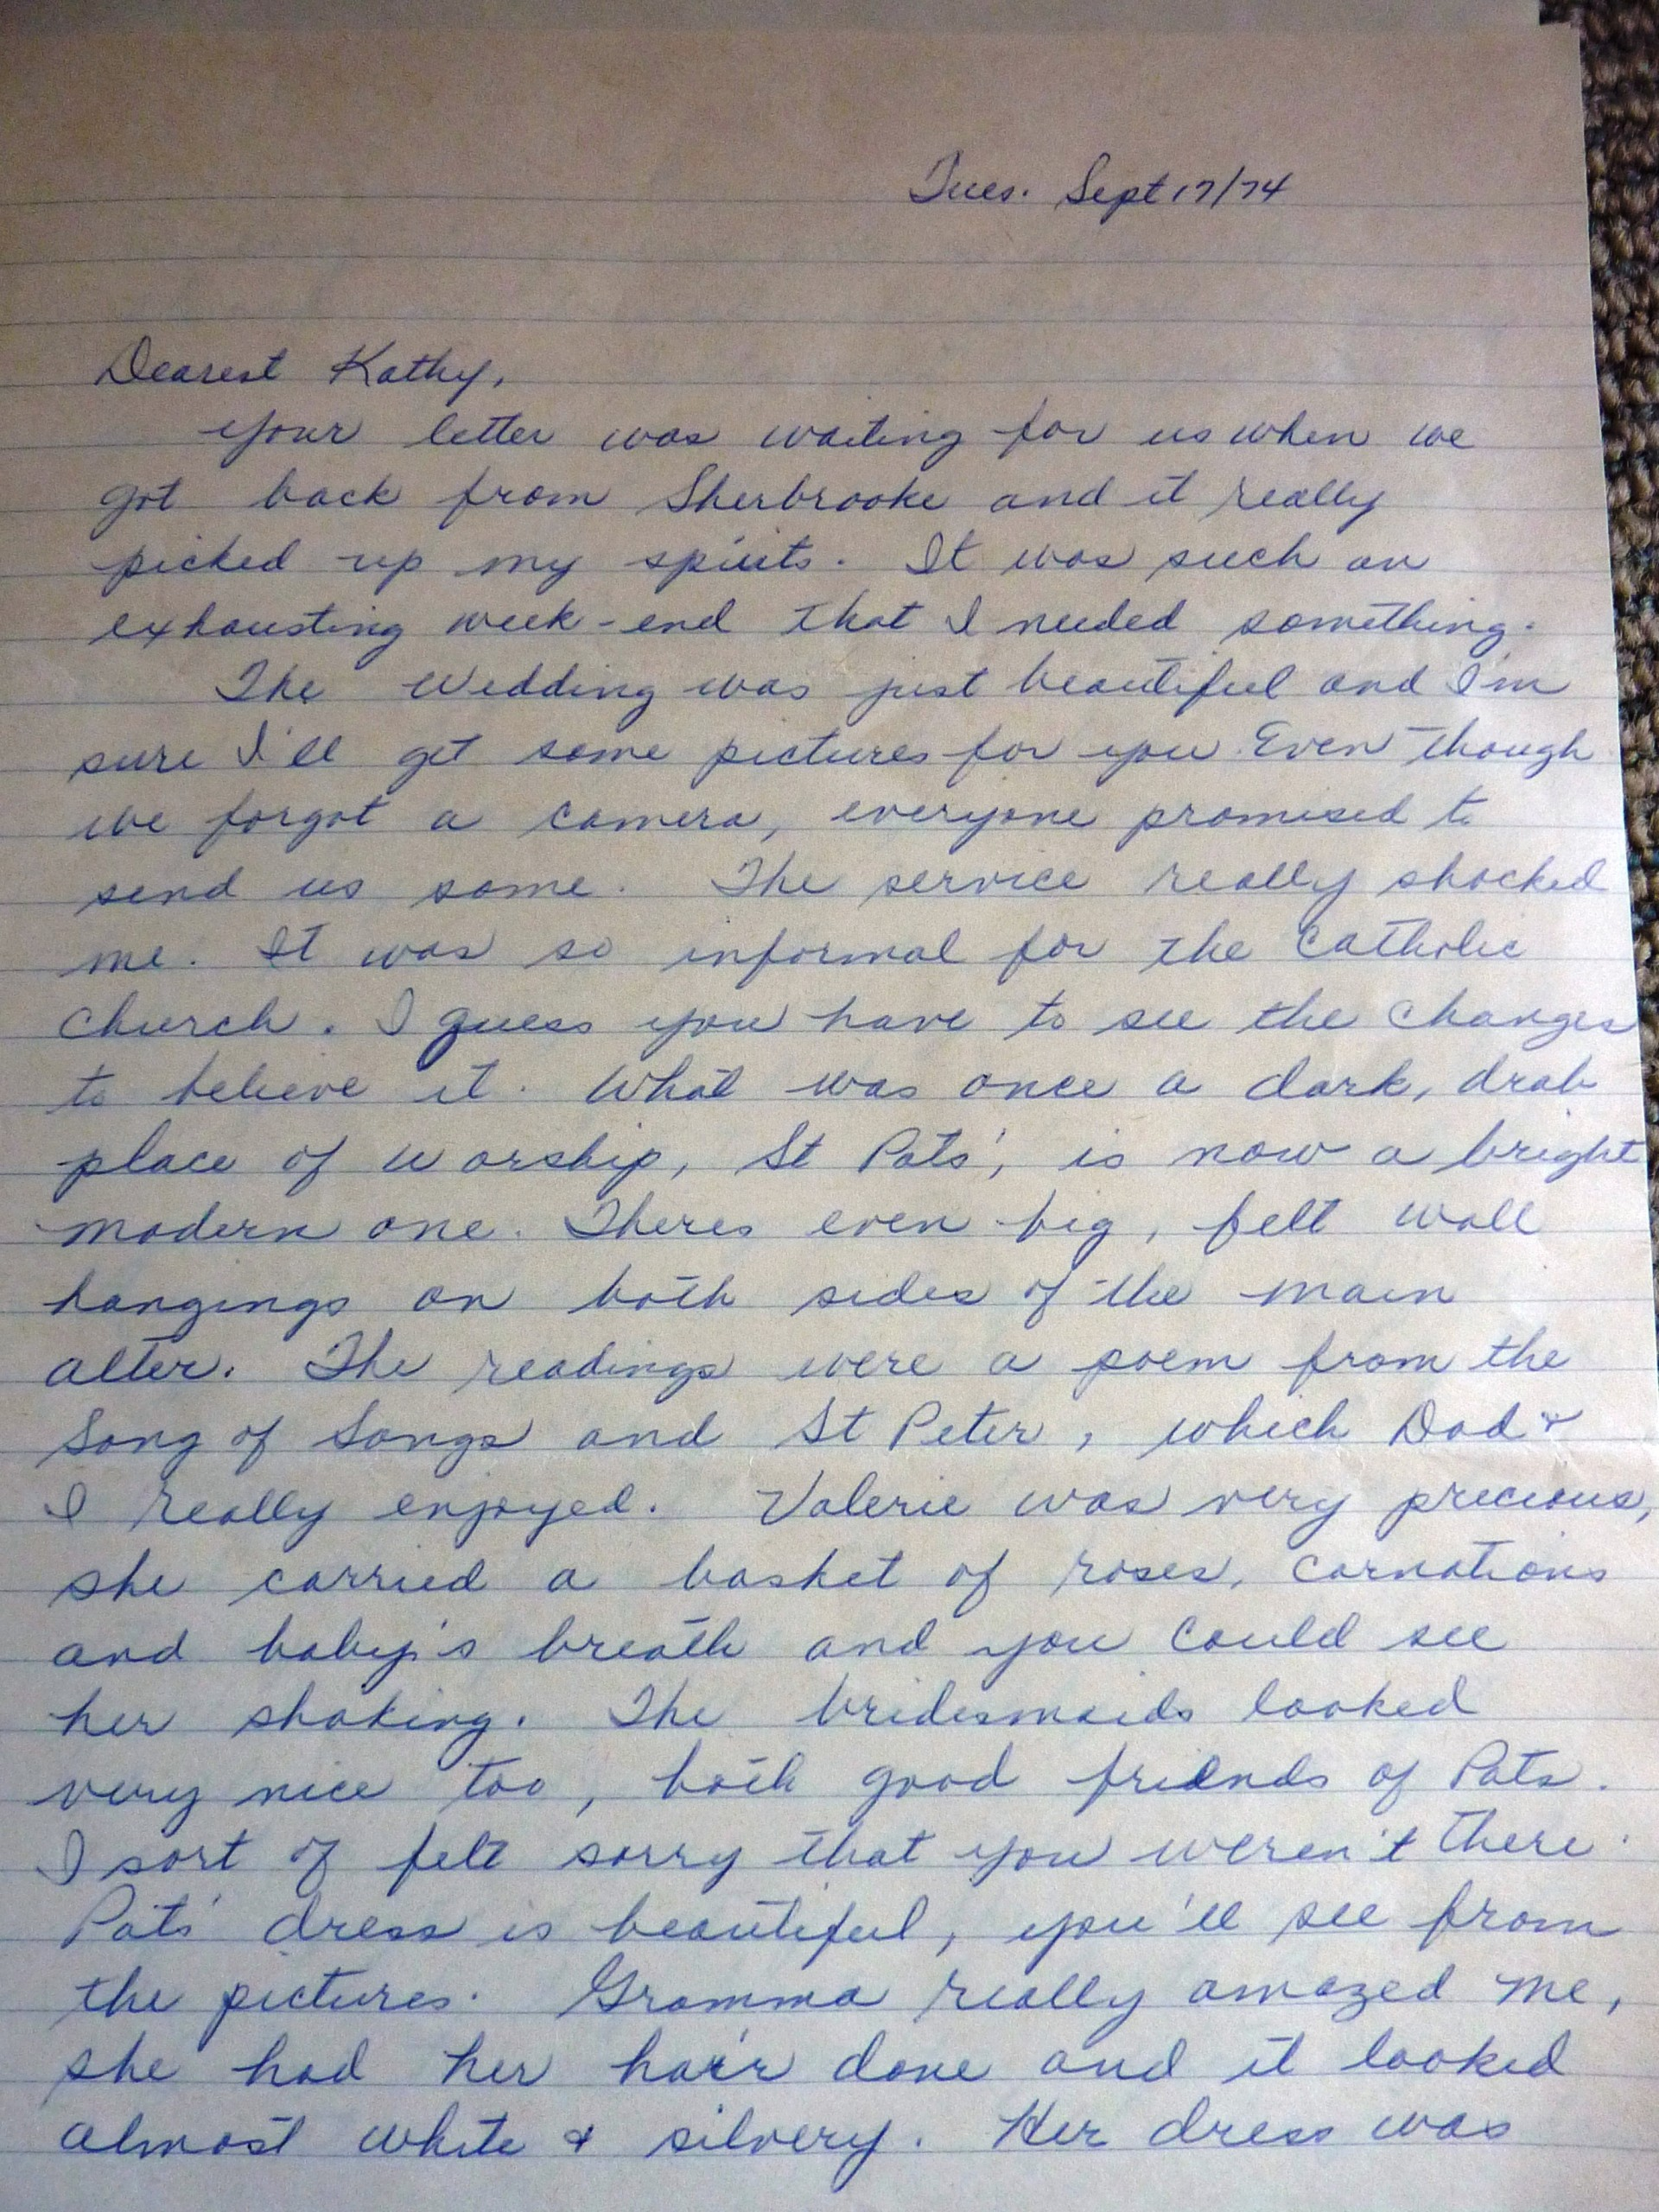 009 P1040267 My Mother Essay Archaicawful For Ukg English Motherland 500 Words 1920